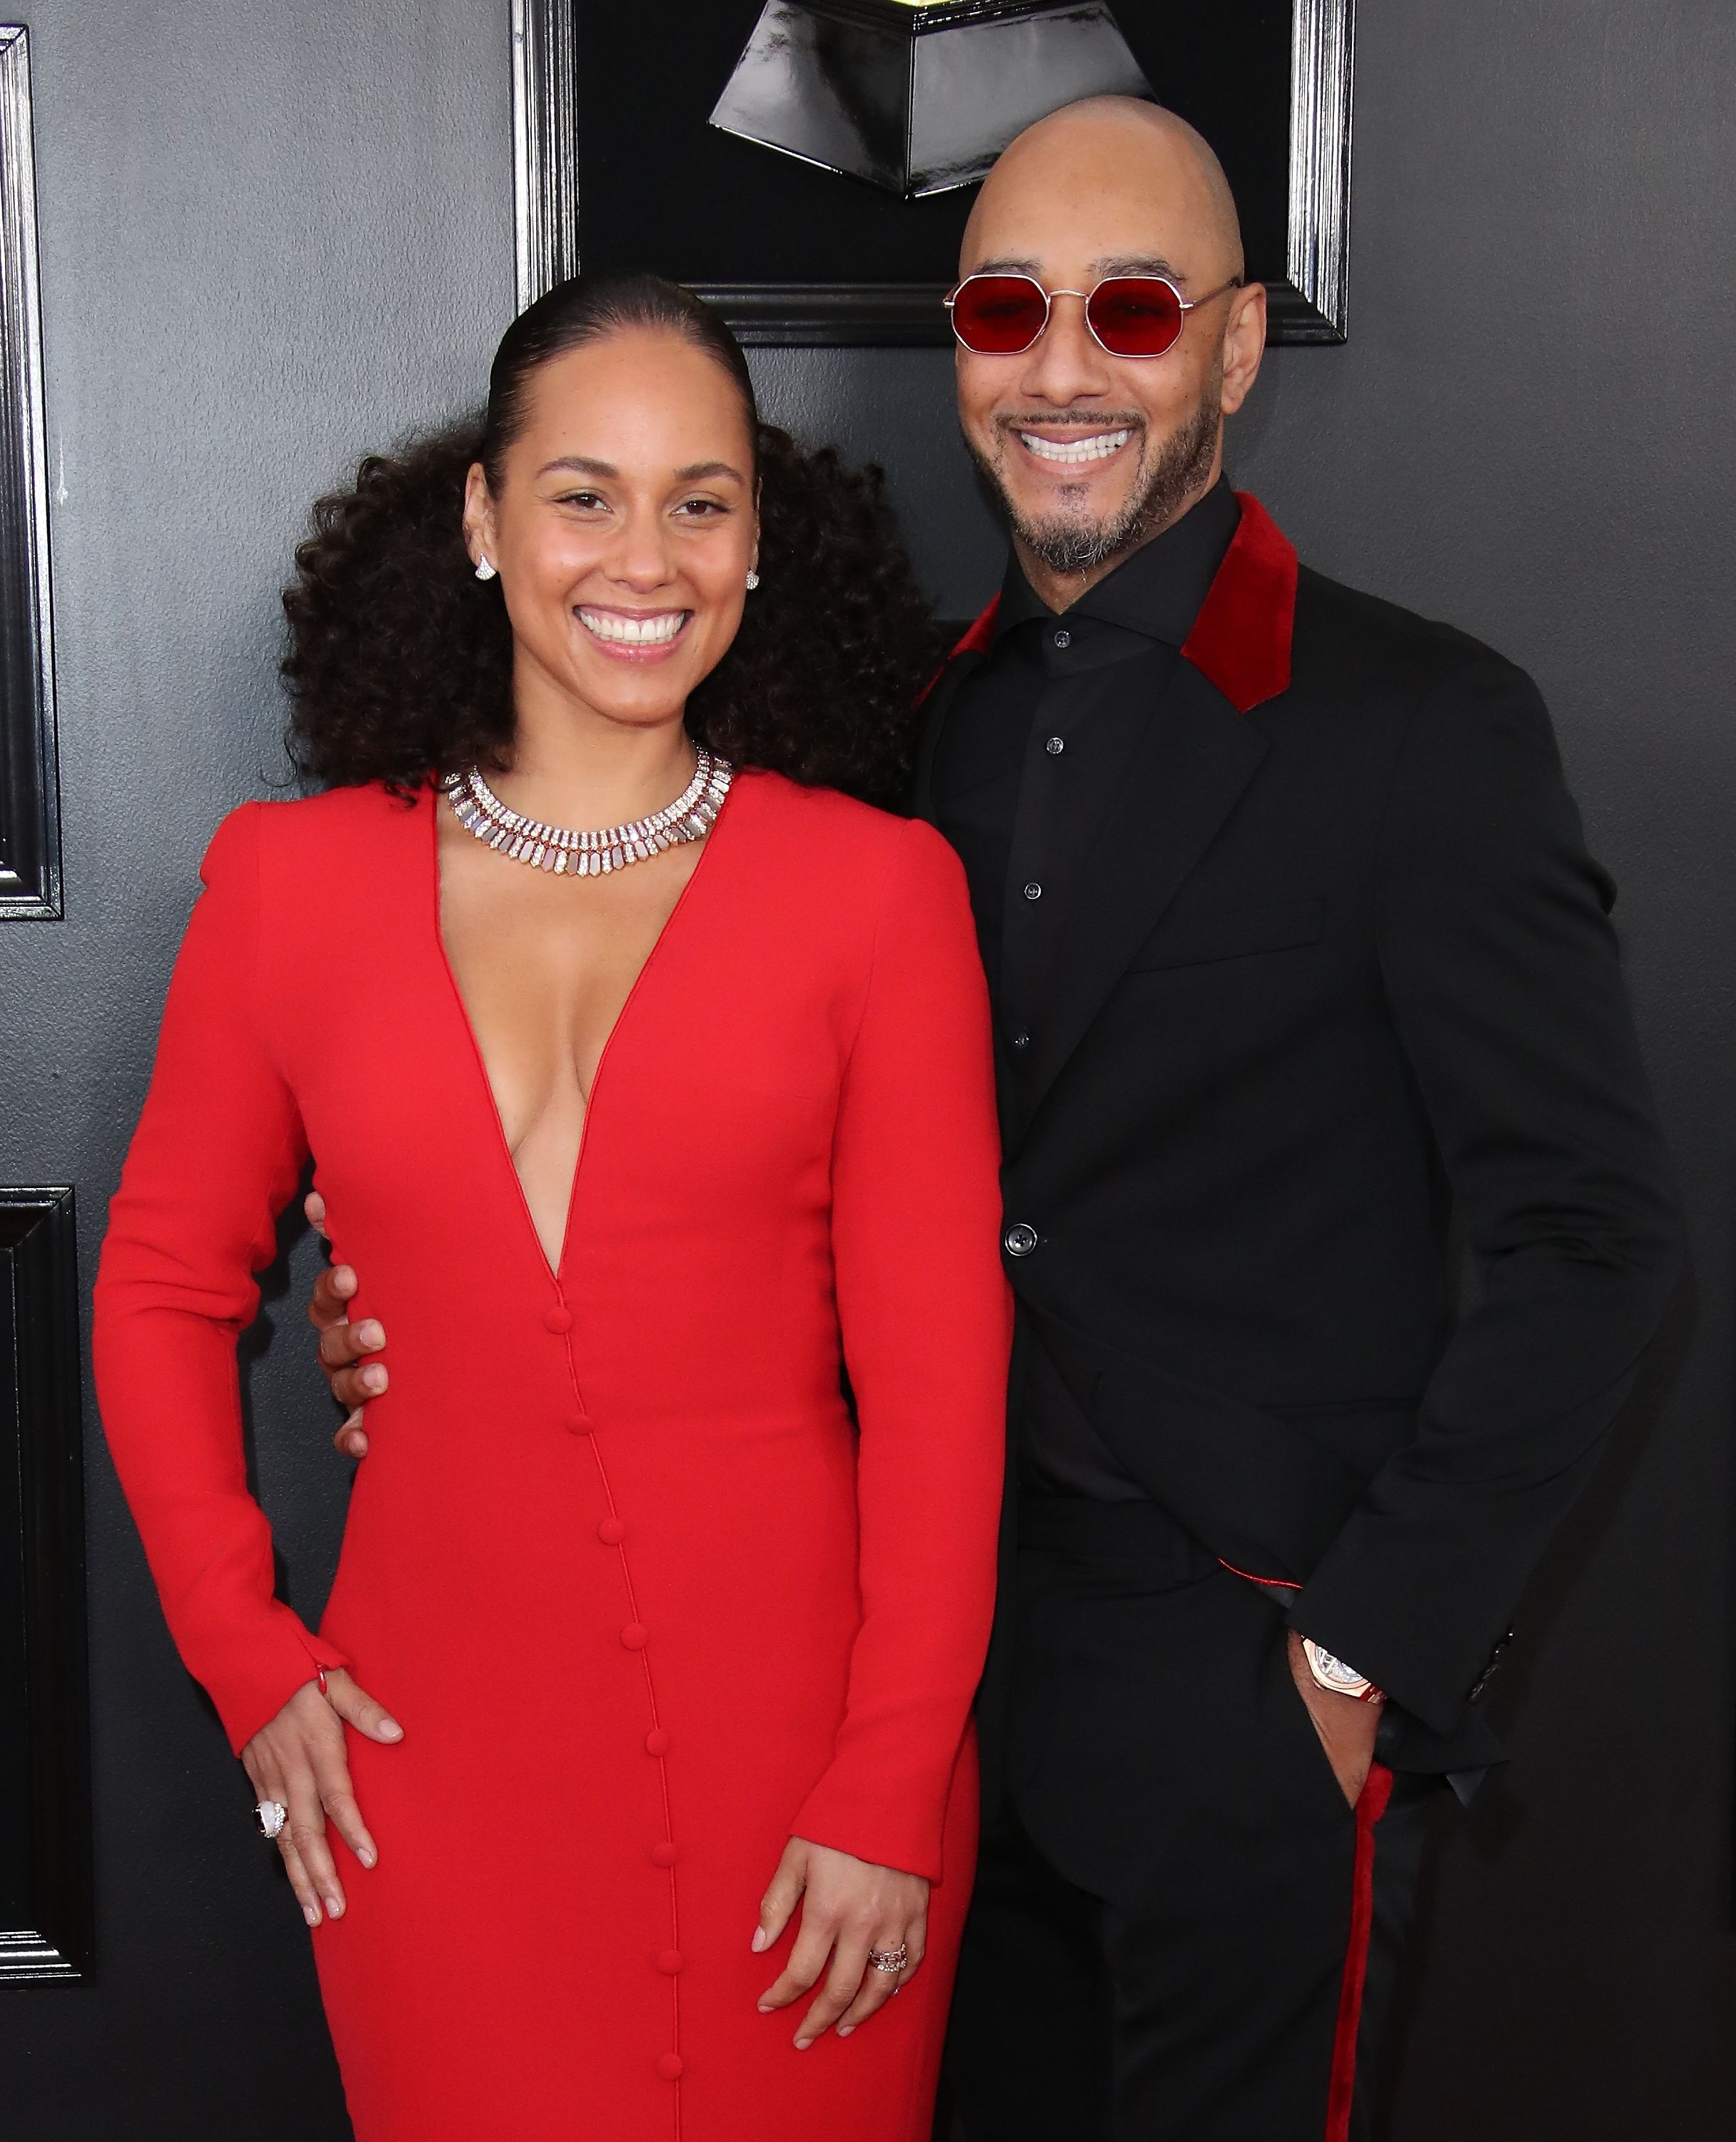 Alicia Keys and Swizz Beatz during the 61st Annual Grammy Awards at Staples Center on February 10, 2019 in Los Angeles, California. | Source: Getty Images